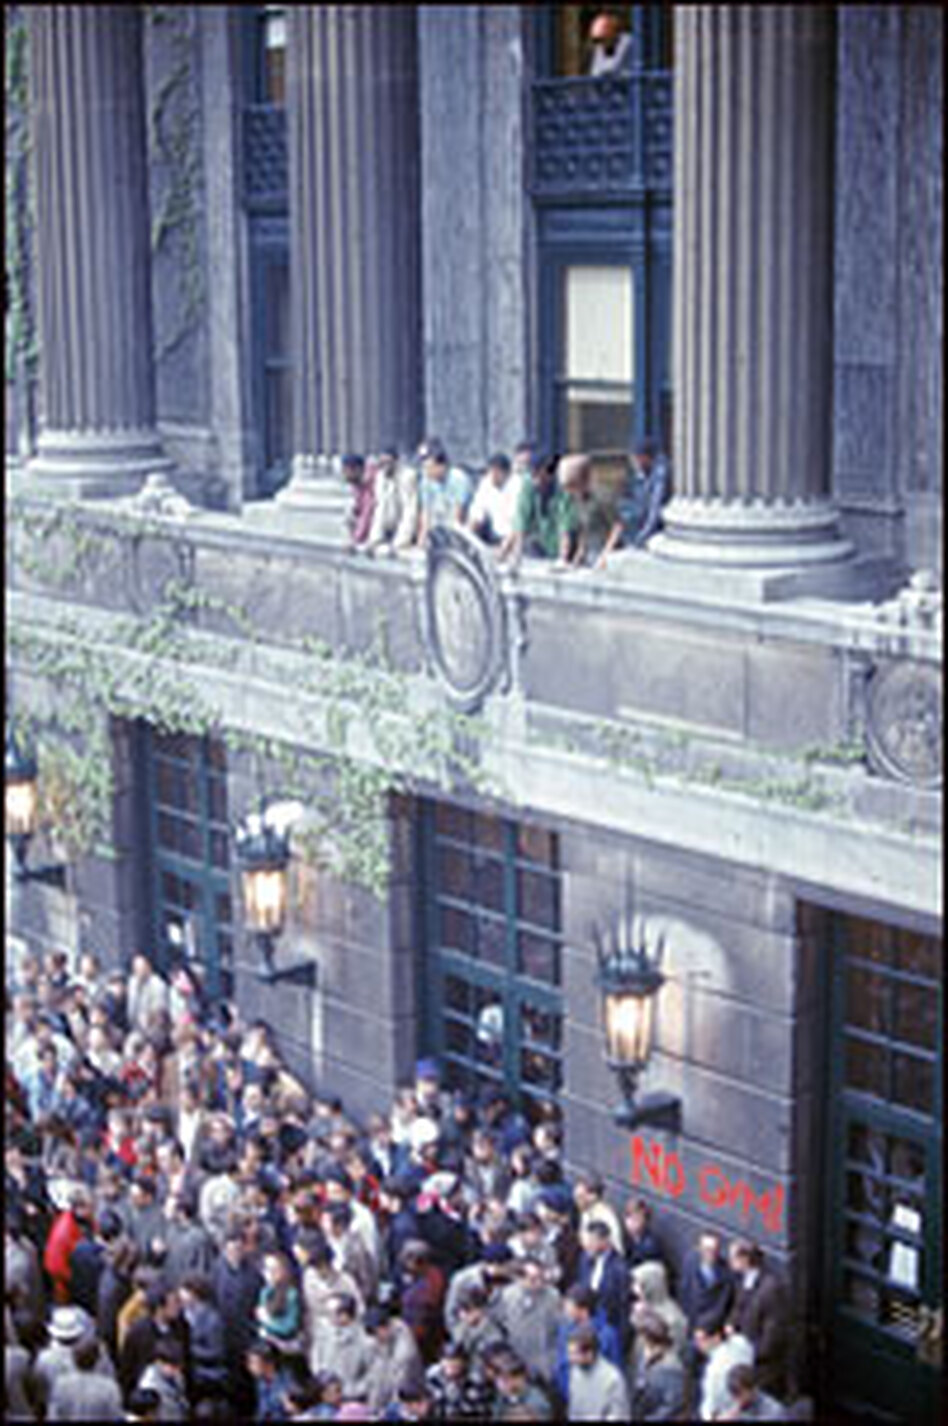 Students spill out of a building at Columbia University, where civil rights and Vietnam war protests led to arrests in April 1968.